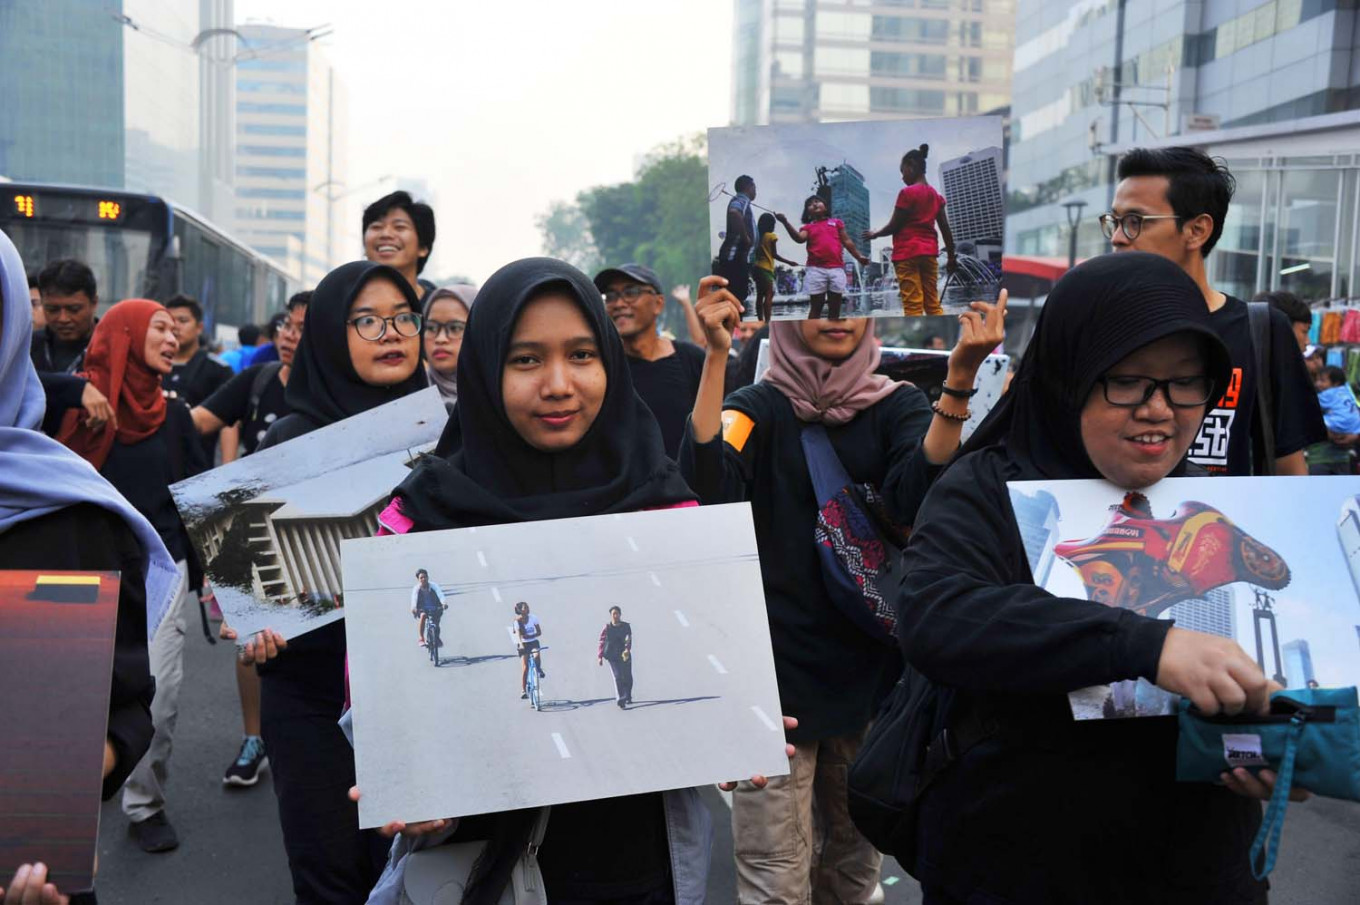 Indonesia among most improved in terms of prosperity with world's highest levels of volunteering: Report